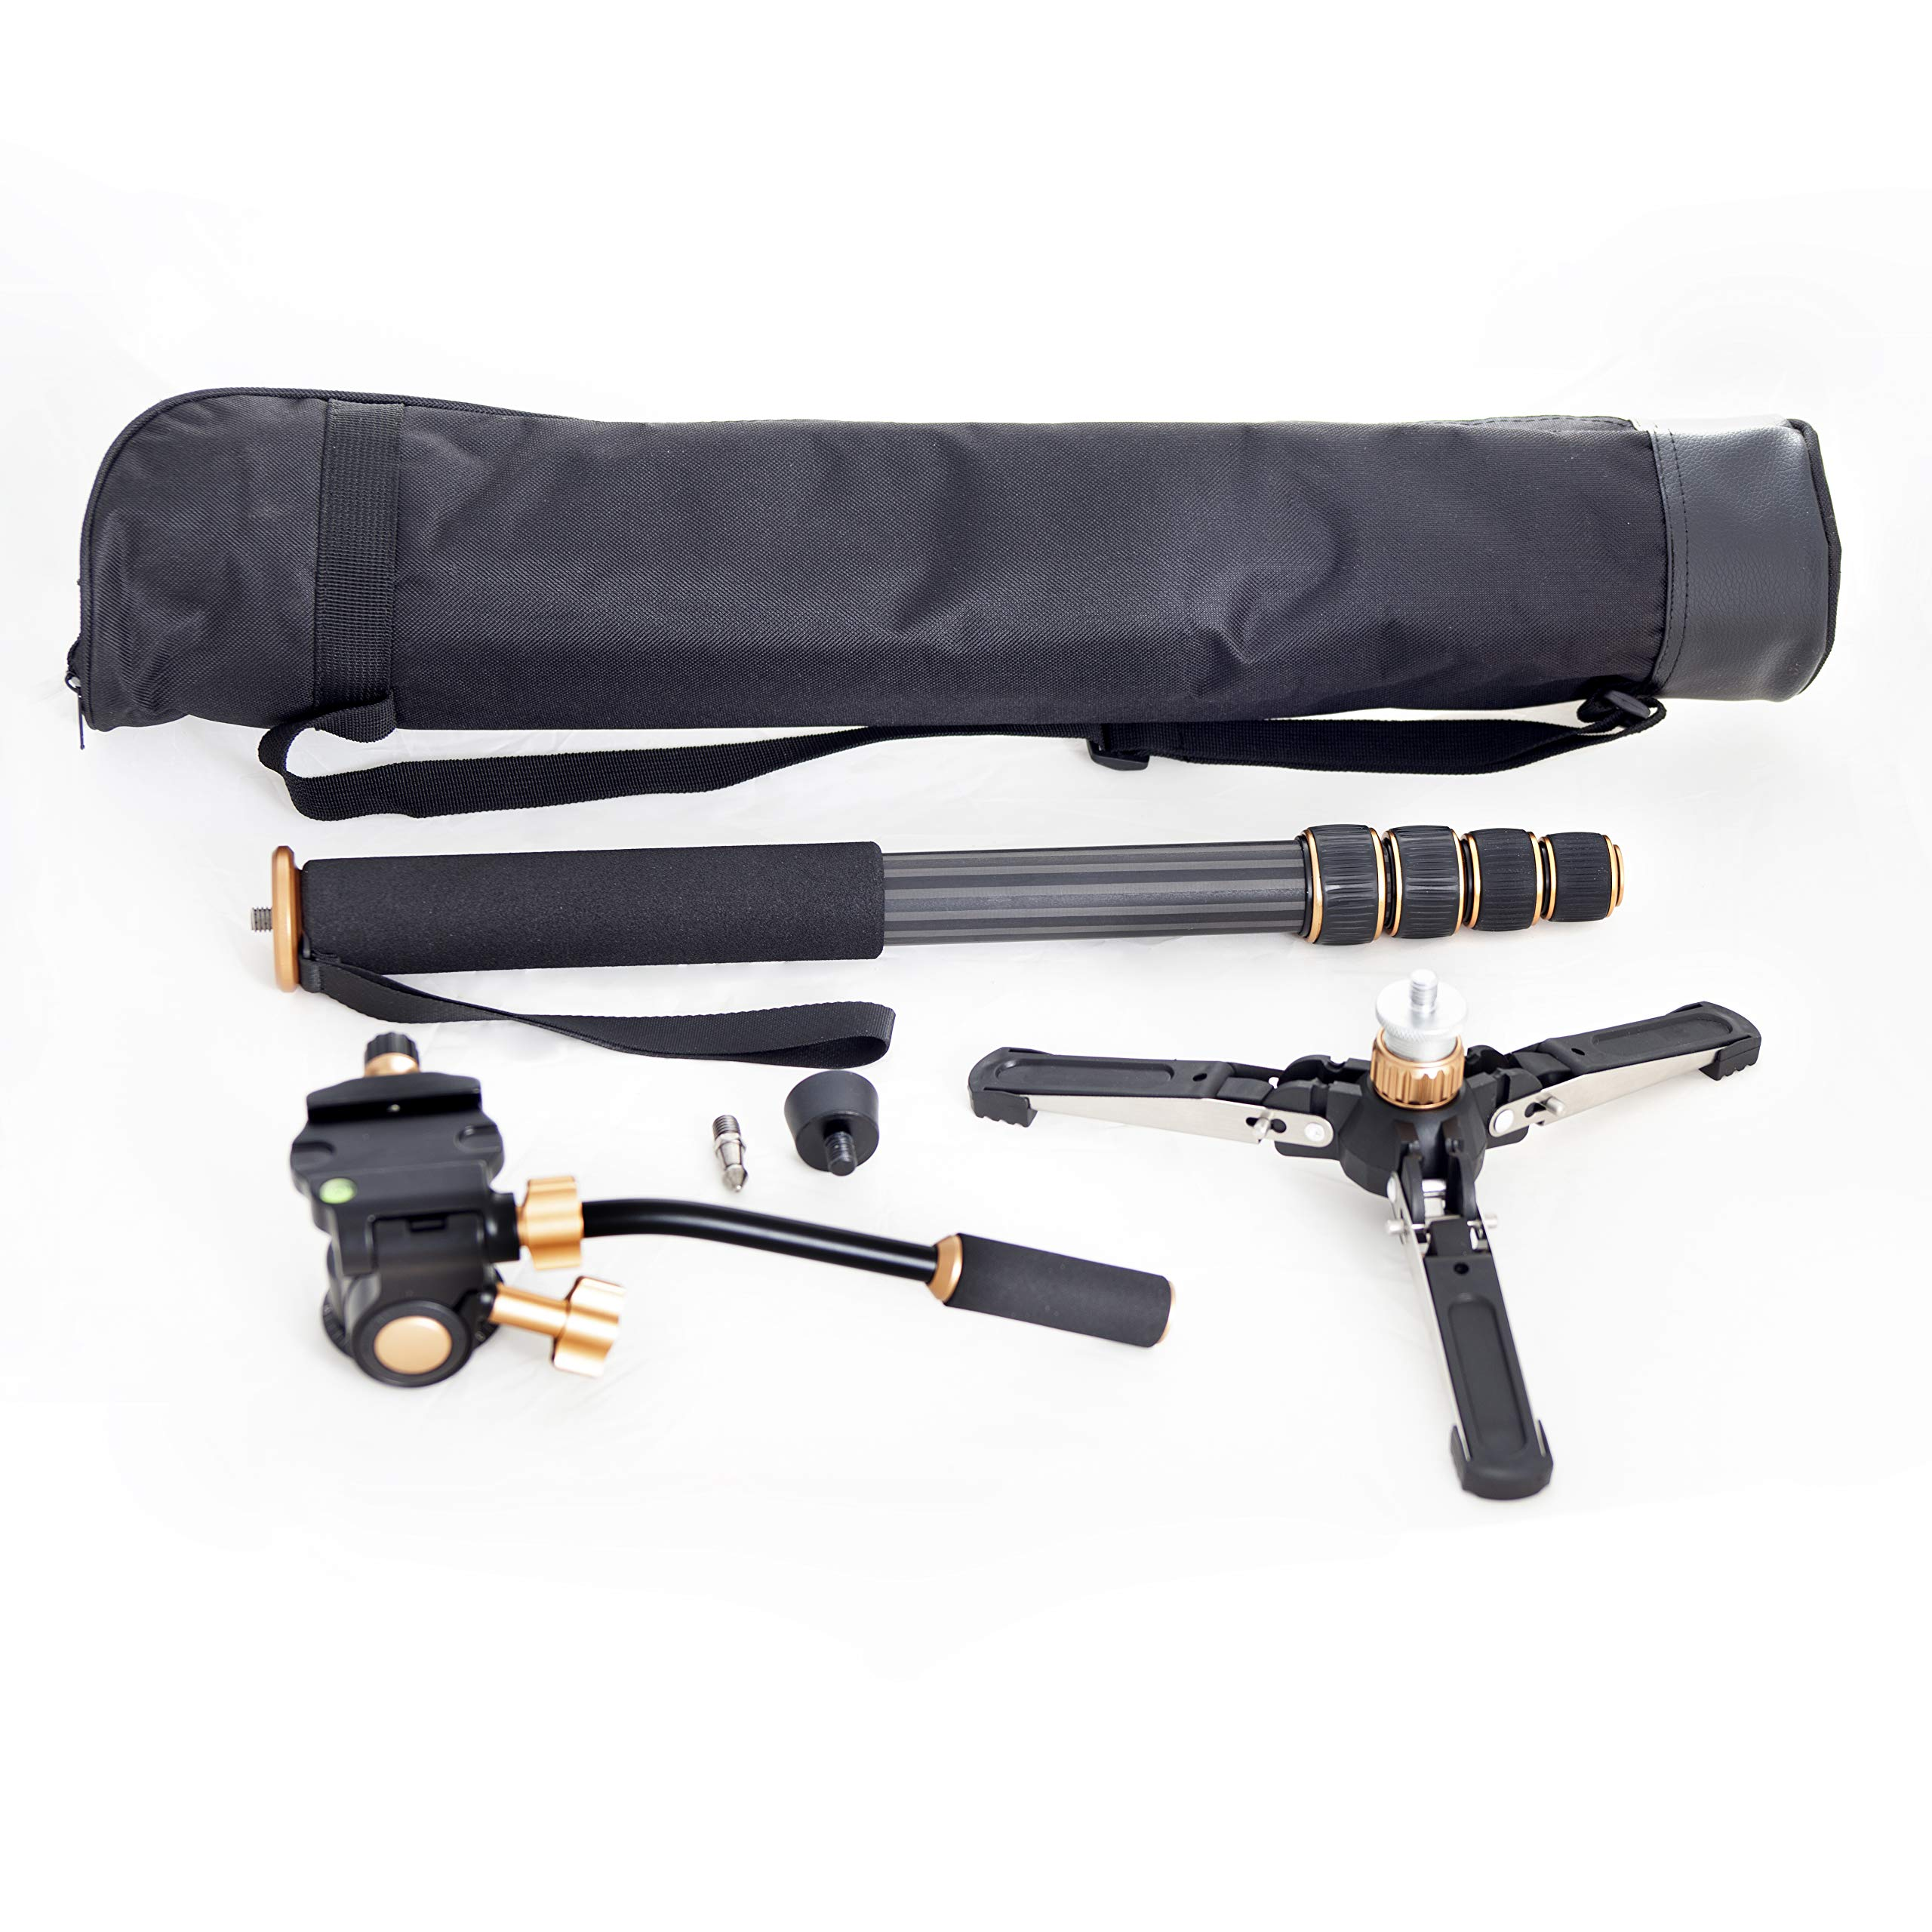 Professional Carbon Fiber Monopod Kit with Photo and Video 3-Way Head & Multi Direction Fluid Base for DSRL Cameras and Videocameras Pole Stick by Sensei Photo (Image #7)